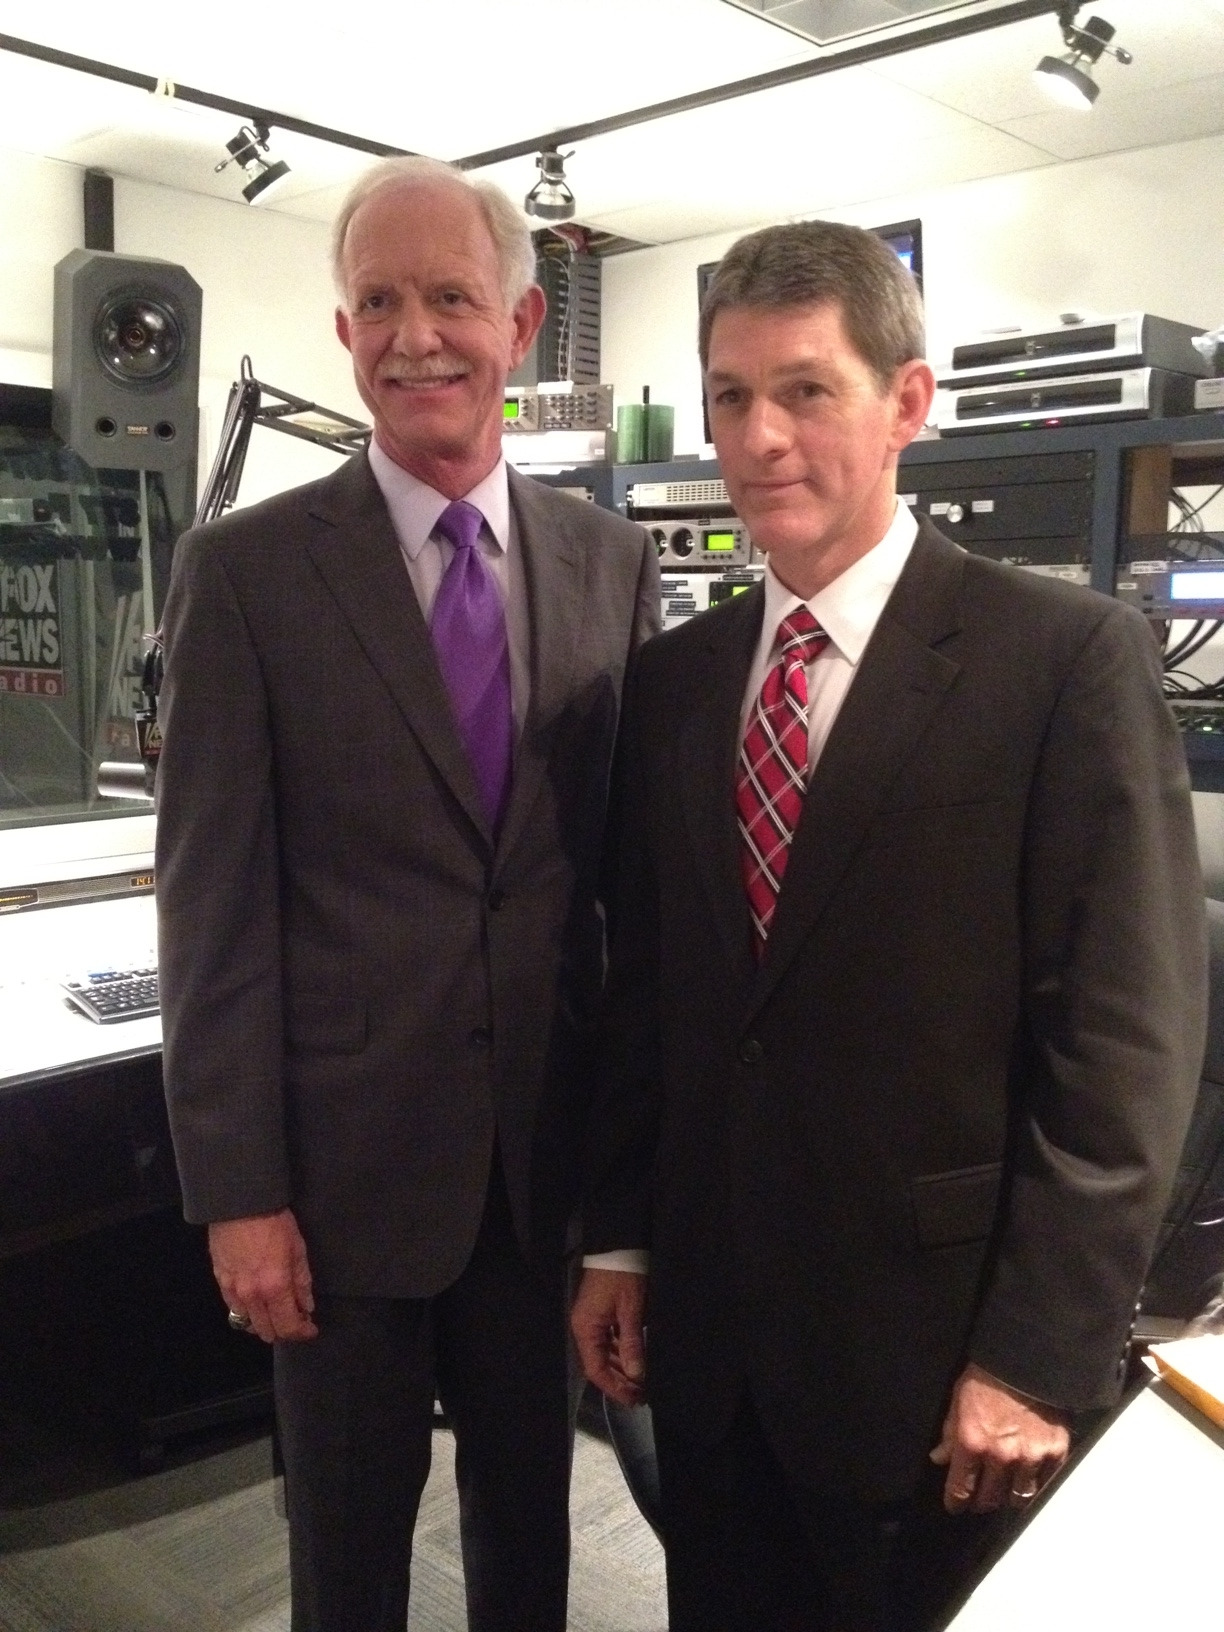 Our author Henry Crumpton with Captain Sully Sullenberger. (Crumpton, a CIA Clandestine Service veteran, has probably experienced aerial crises too, though he's not allowed to talk about it.)